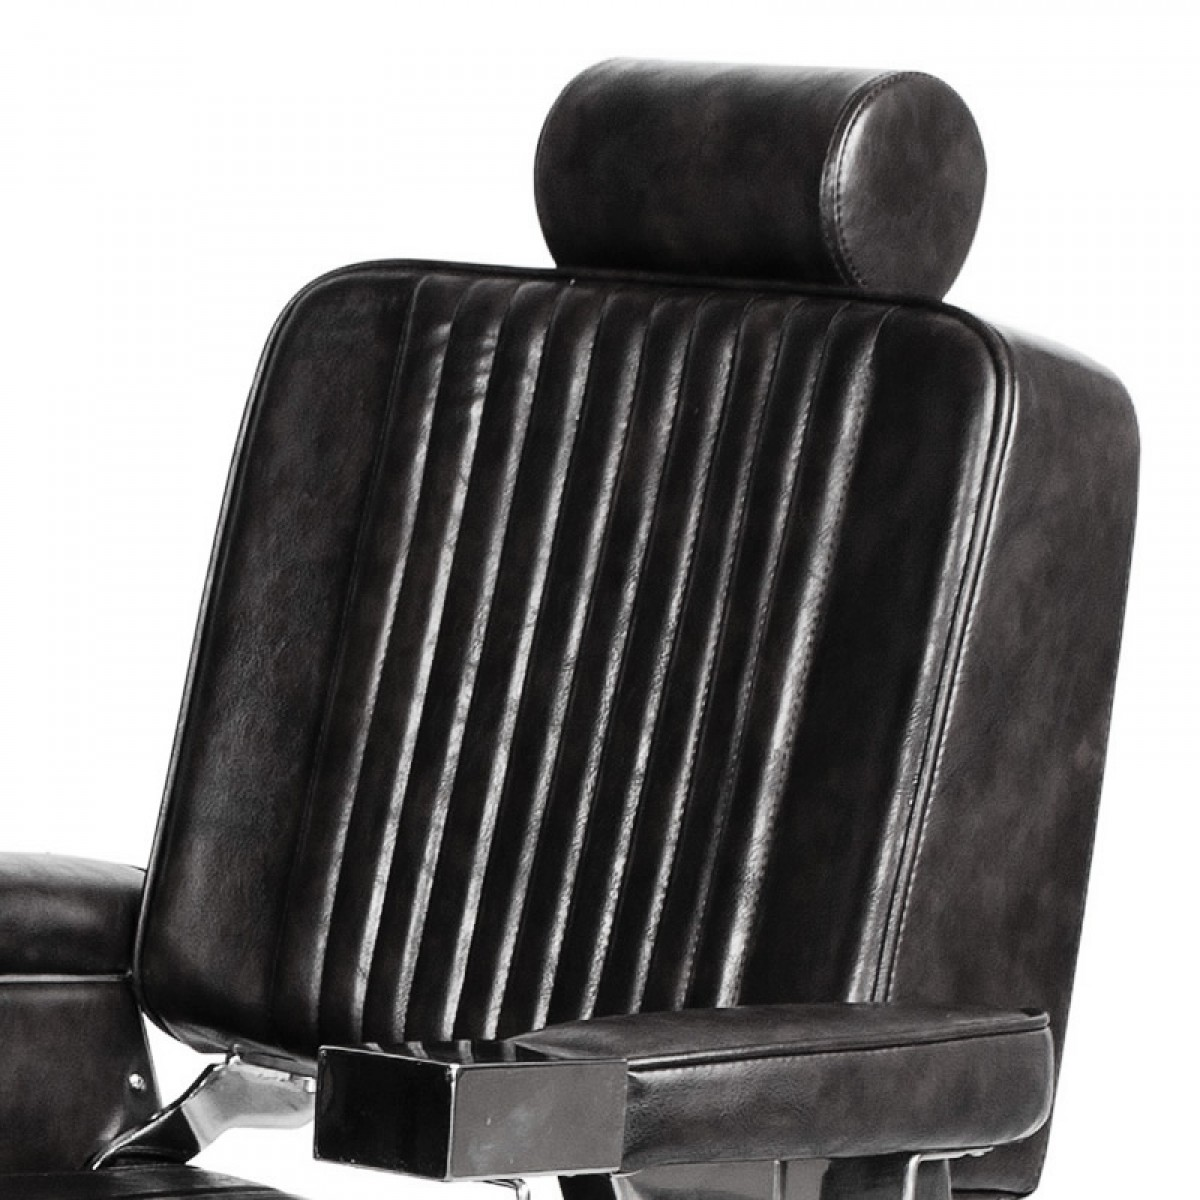 Backrest for Constantine Barber Chair, Without Headrest (Made To Order)